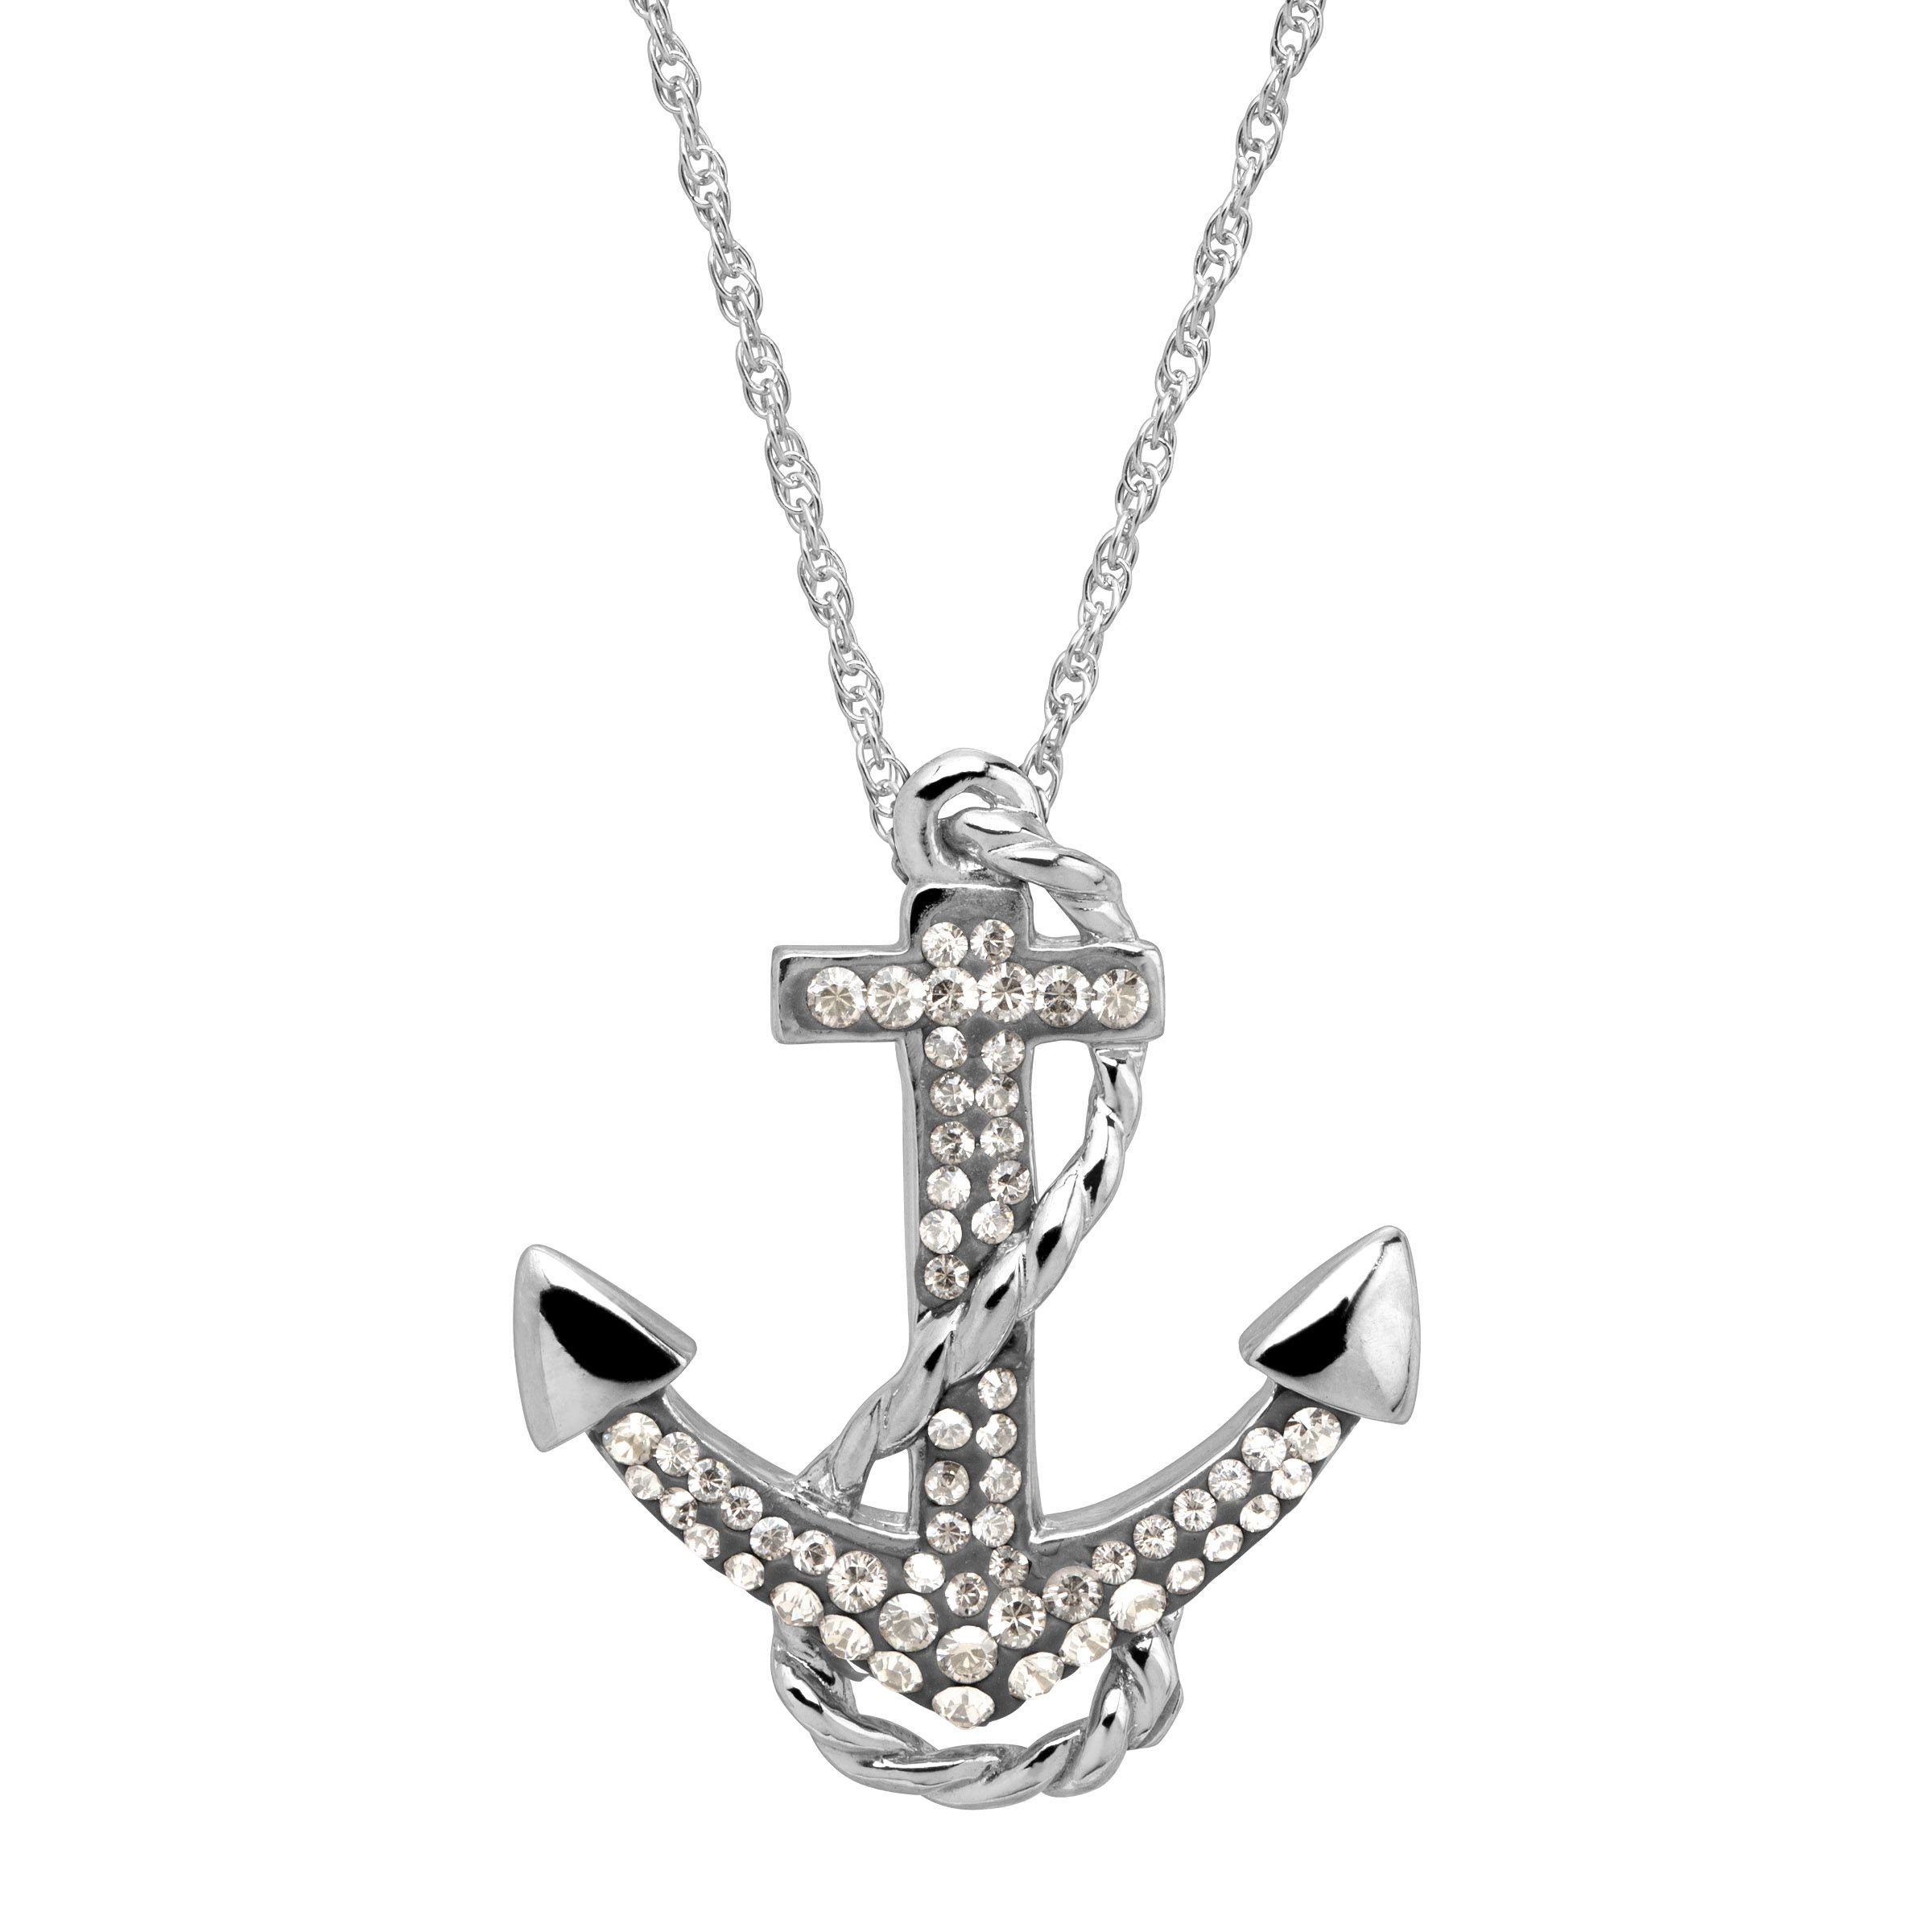 Crystaluxe Anchor Pendant With Swarovski Crystals In